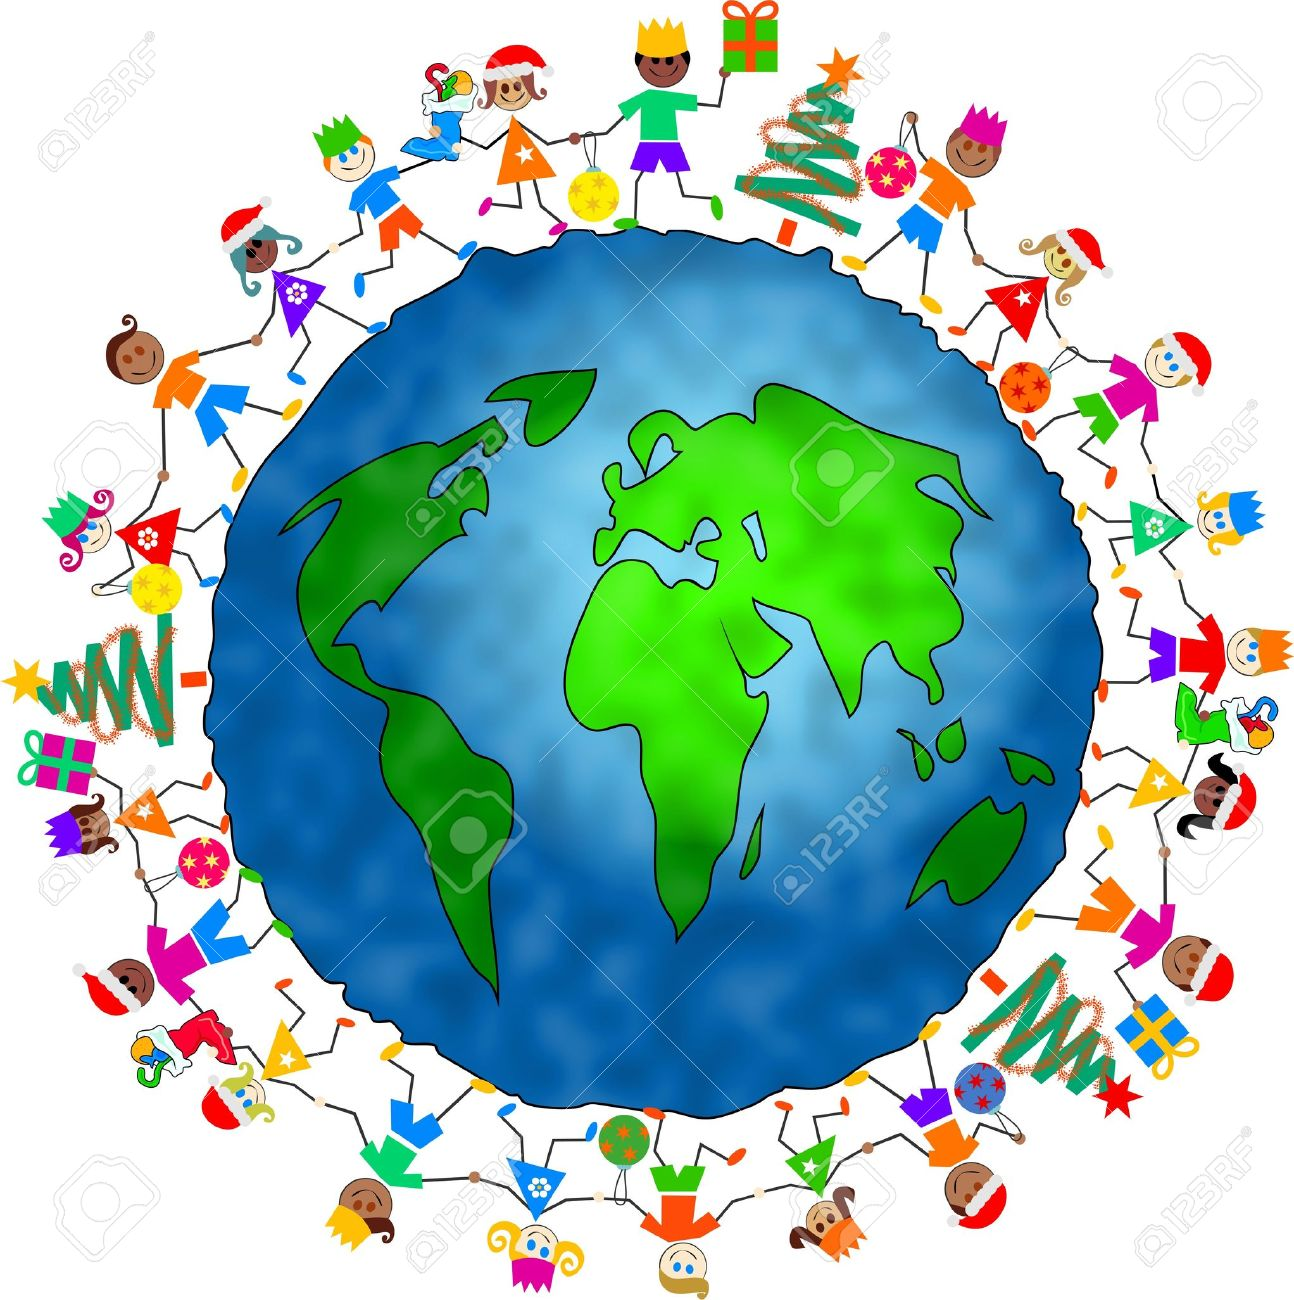 group of diverse children celebrating Christmas holding hands around the globe together Stock Photo - 3482168